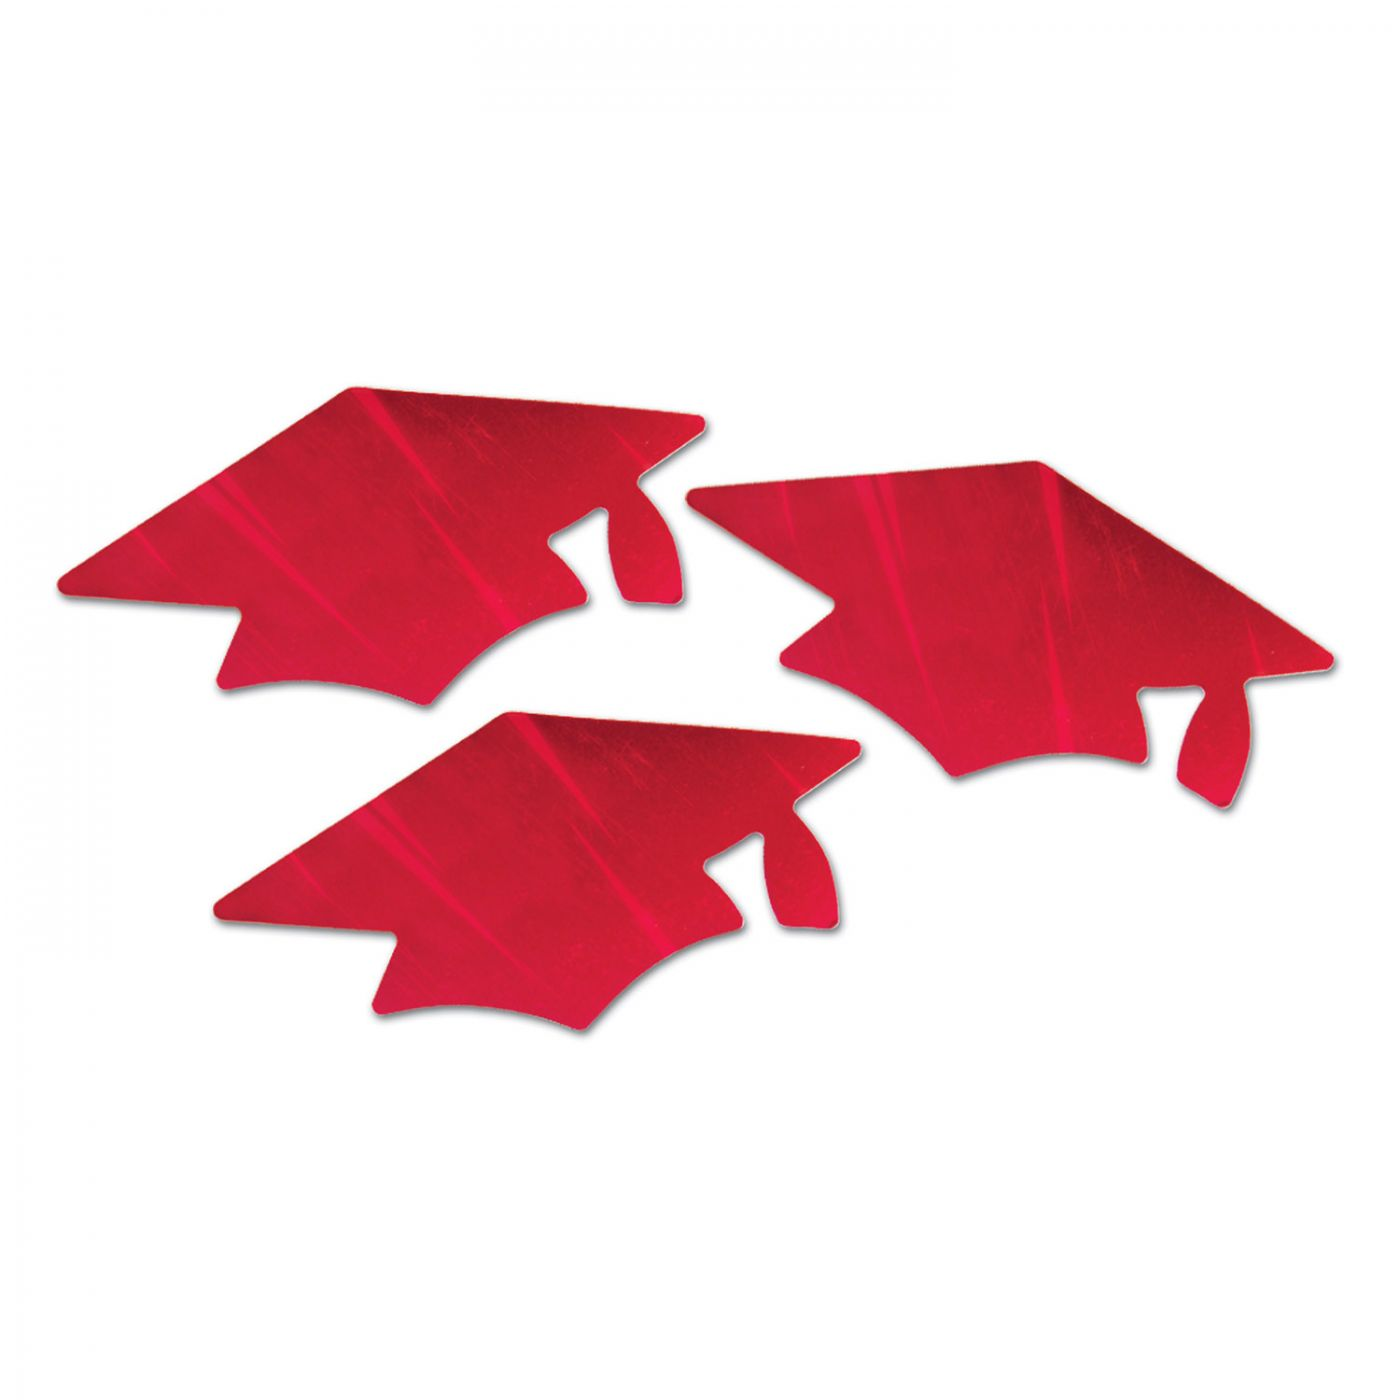 Red Metallic Grad Cap Cutouts (6) image